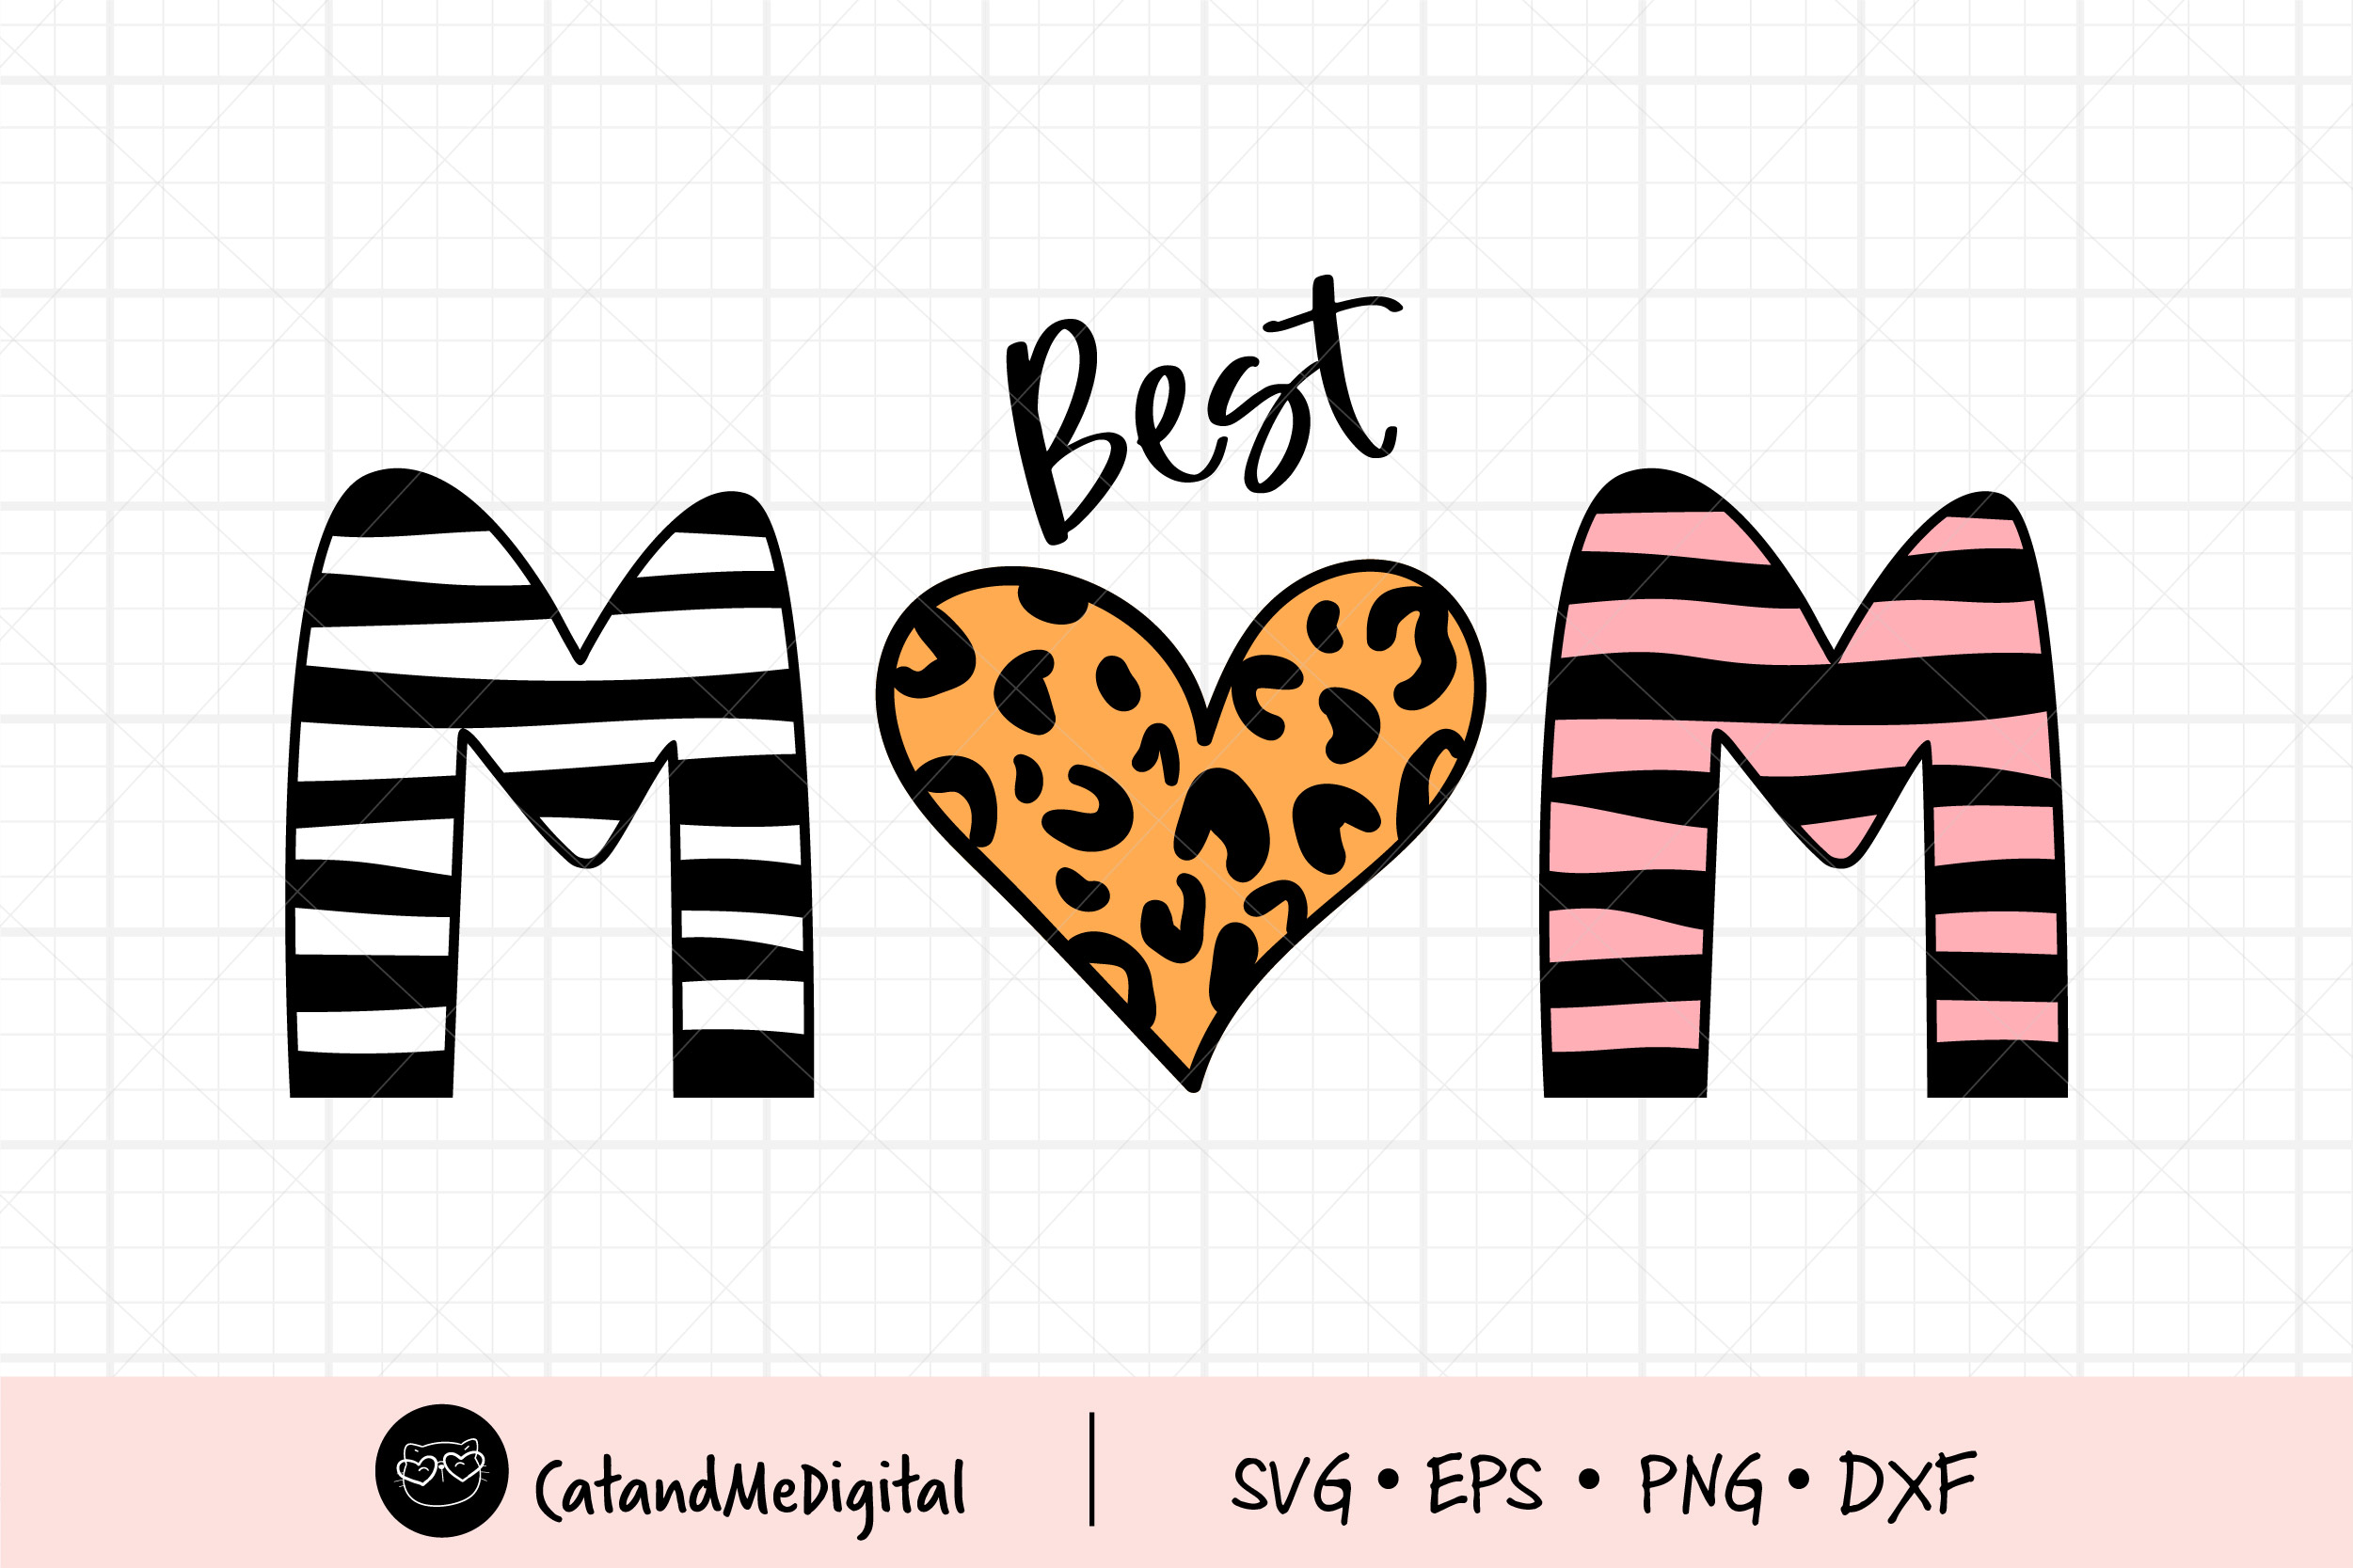 Svg File Share The Love Svg Download Free And Premium Svg Cut Files